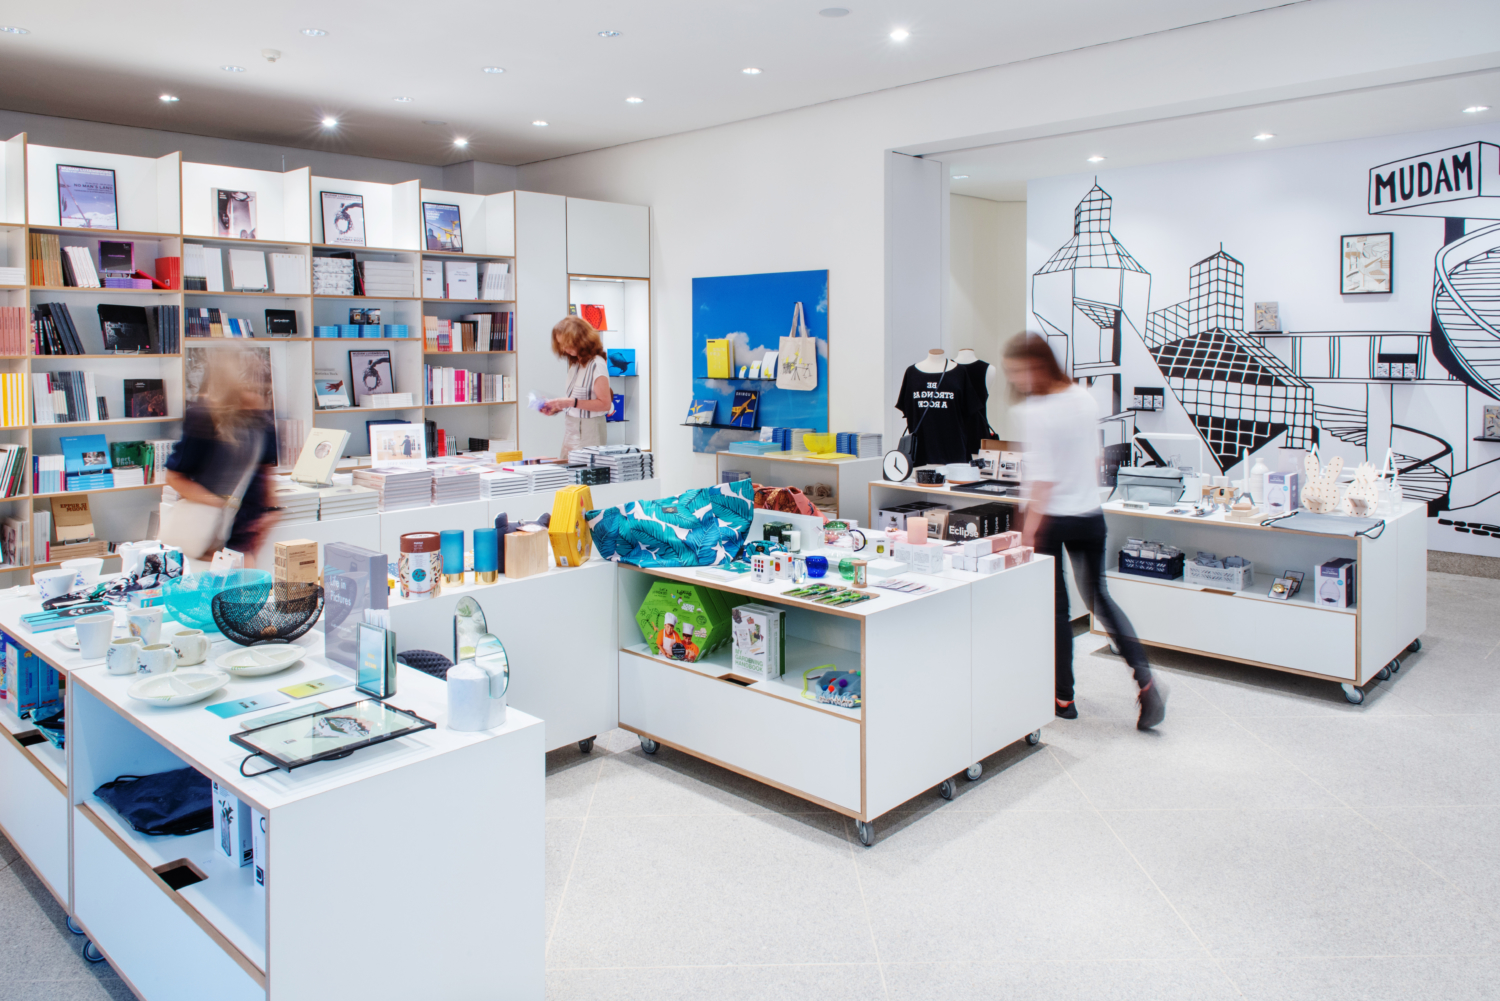 Mudam Boutique is a museum store unlike any other. While stocking selection of contemporary art literature, Mudam publications and postcards, the shop's key feature is its outstanding selection of handpicked objects, ranging from original items and gifts to design pieces that cater to each and every taste.